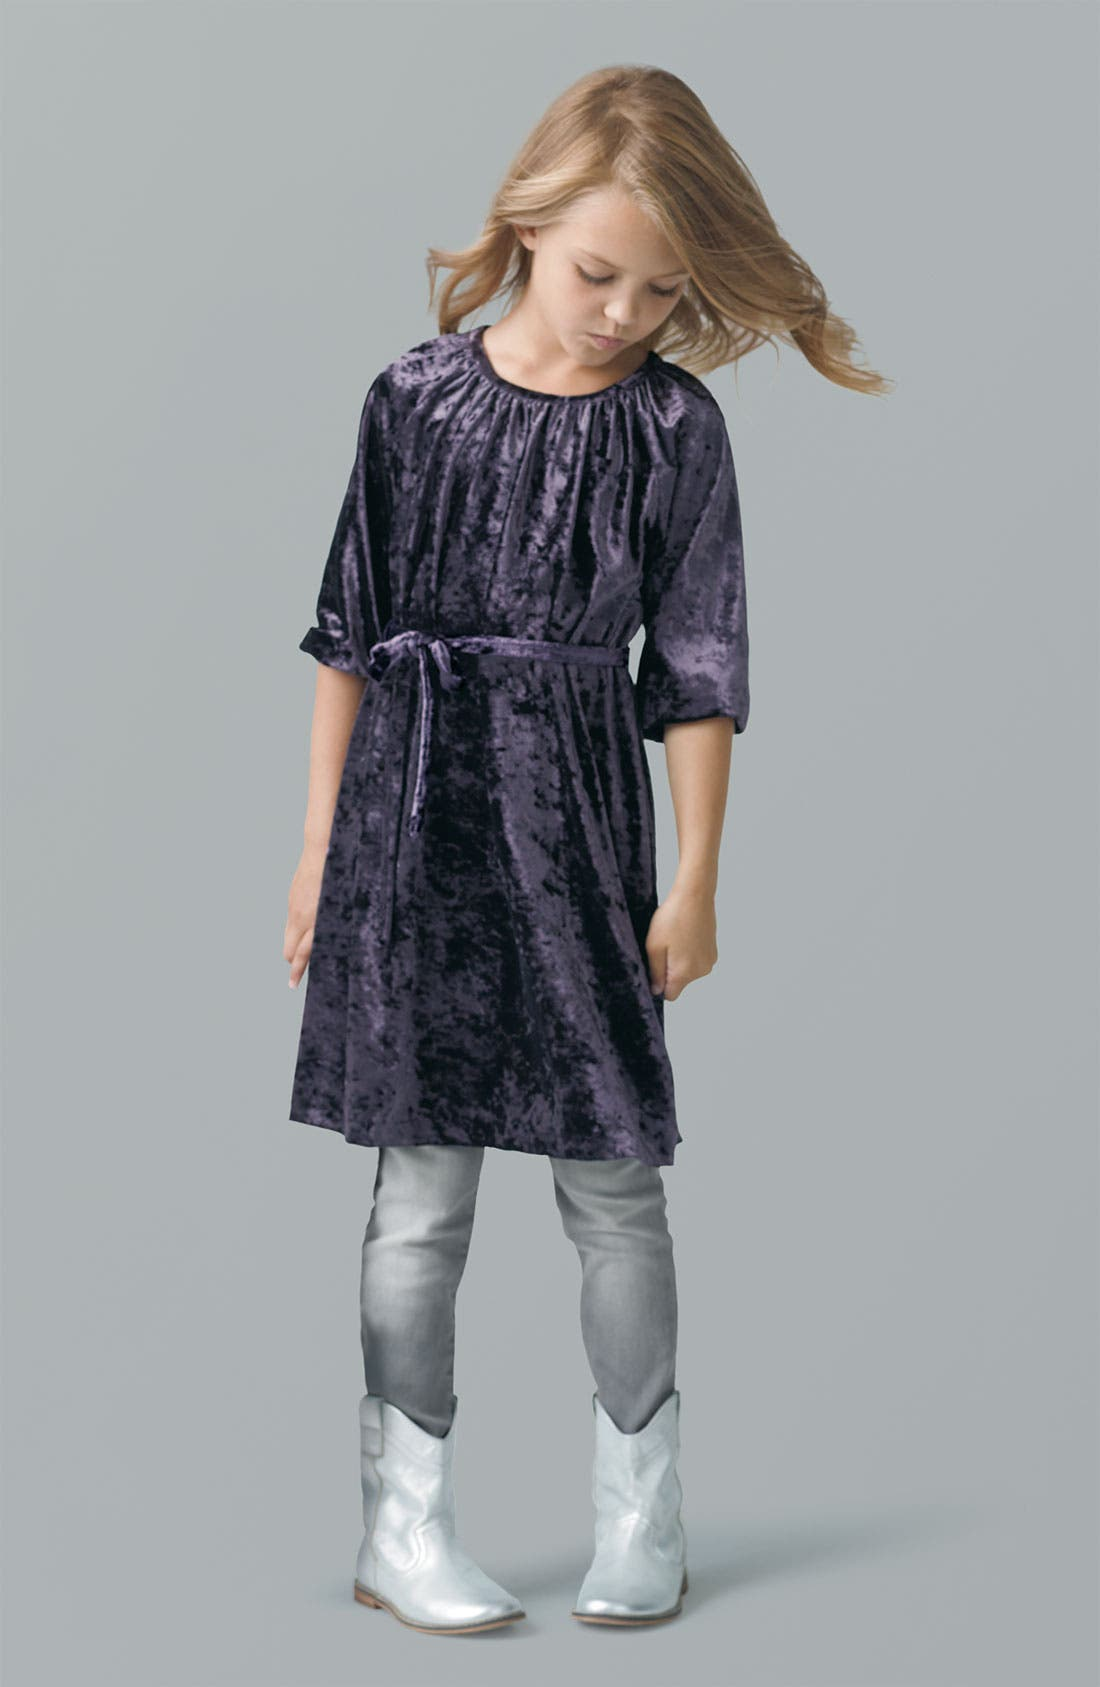 Main Image - Peek Dress & Jeans (Toddler, Little Girls & Big Girls)